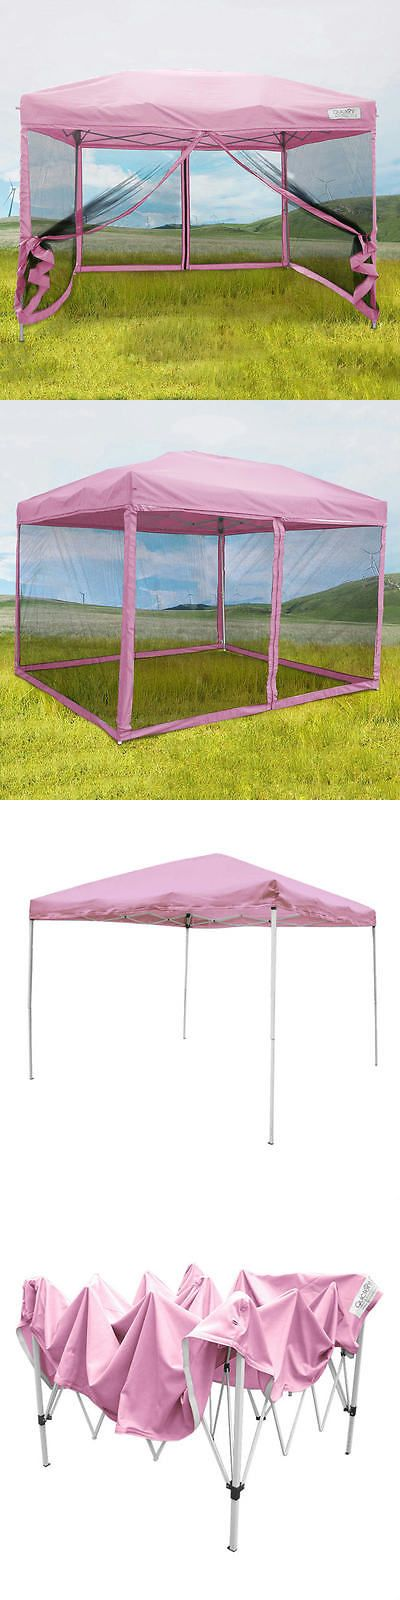 Awnings and Canopies 180992: Quictent 8X8 Pink Ez Pop Up Gazebo Party Tent Canopy Mesh Screen With Carry Bag -> BUY IT NOW ONLY: $99.99 on eBay!